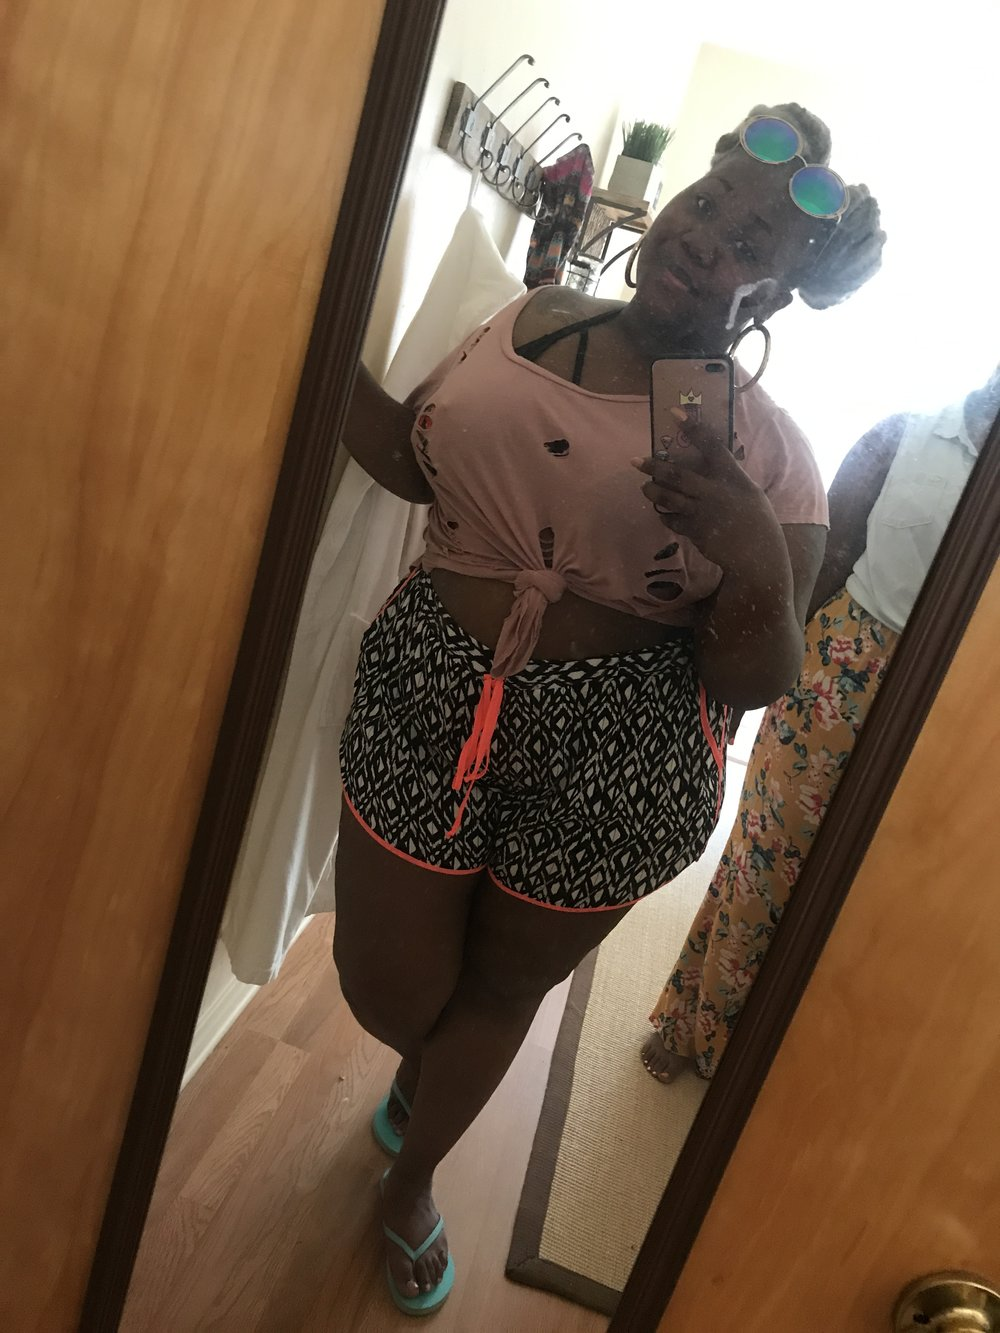 One of my favorite outfits I wore. This was beach day!